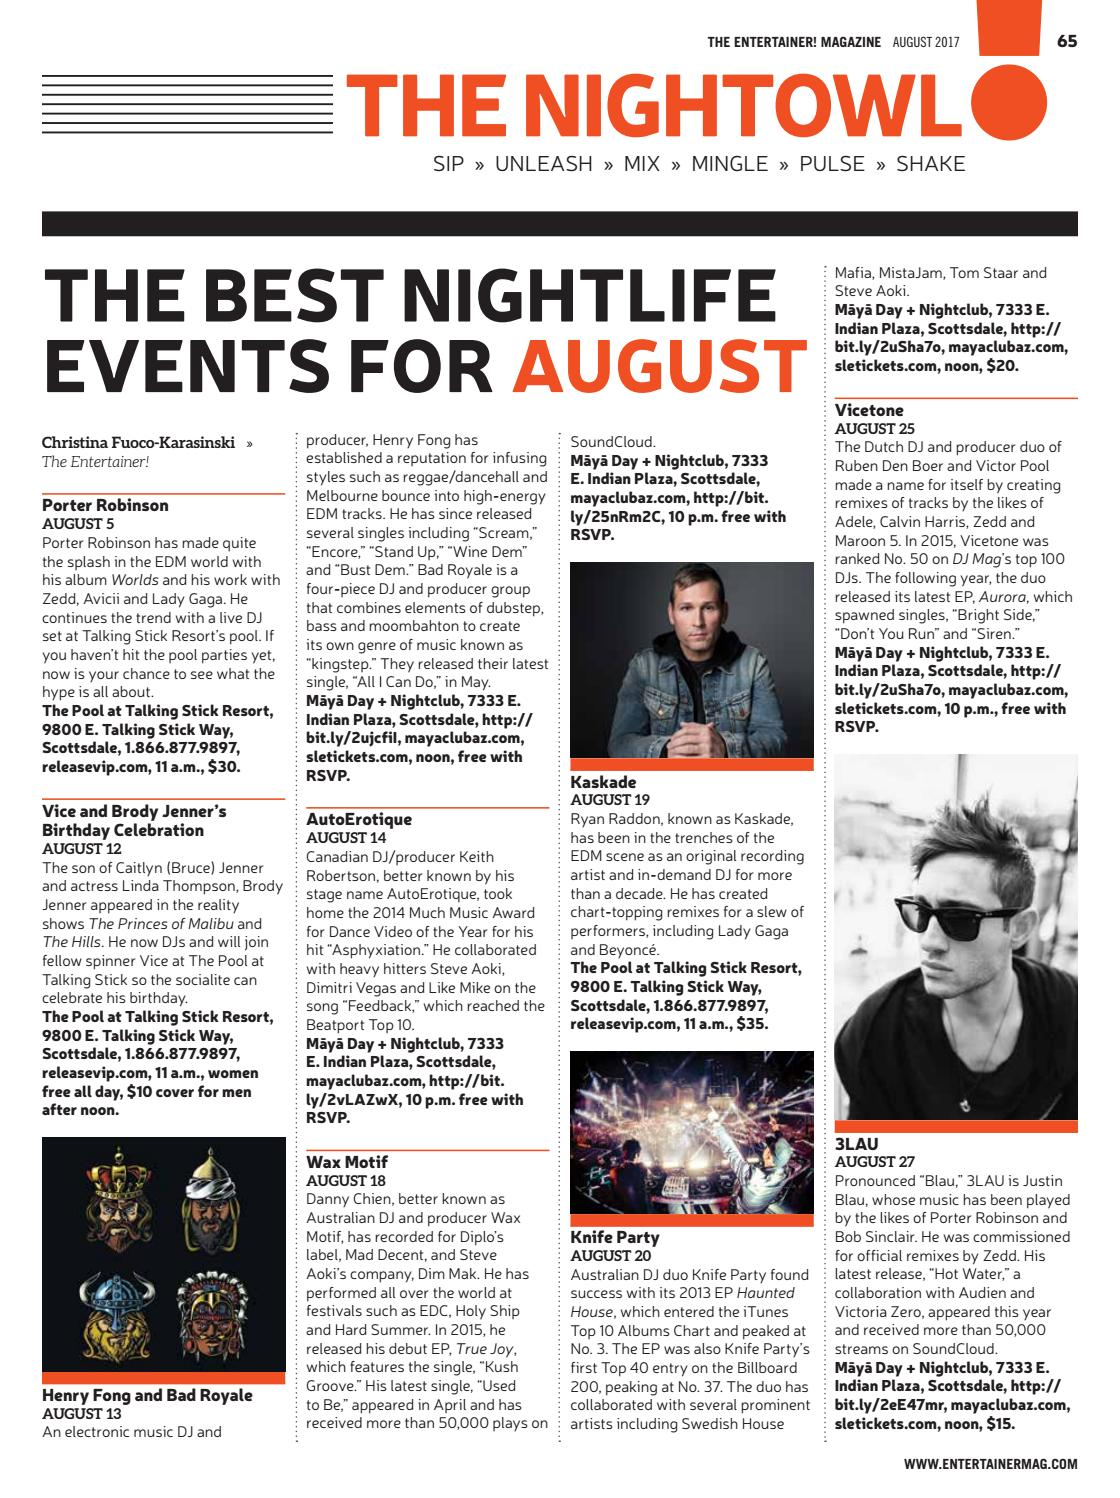 The Entertainer! - August 2017 by Times Media Group - issuu